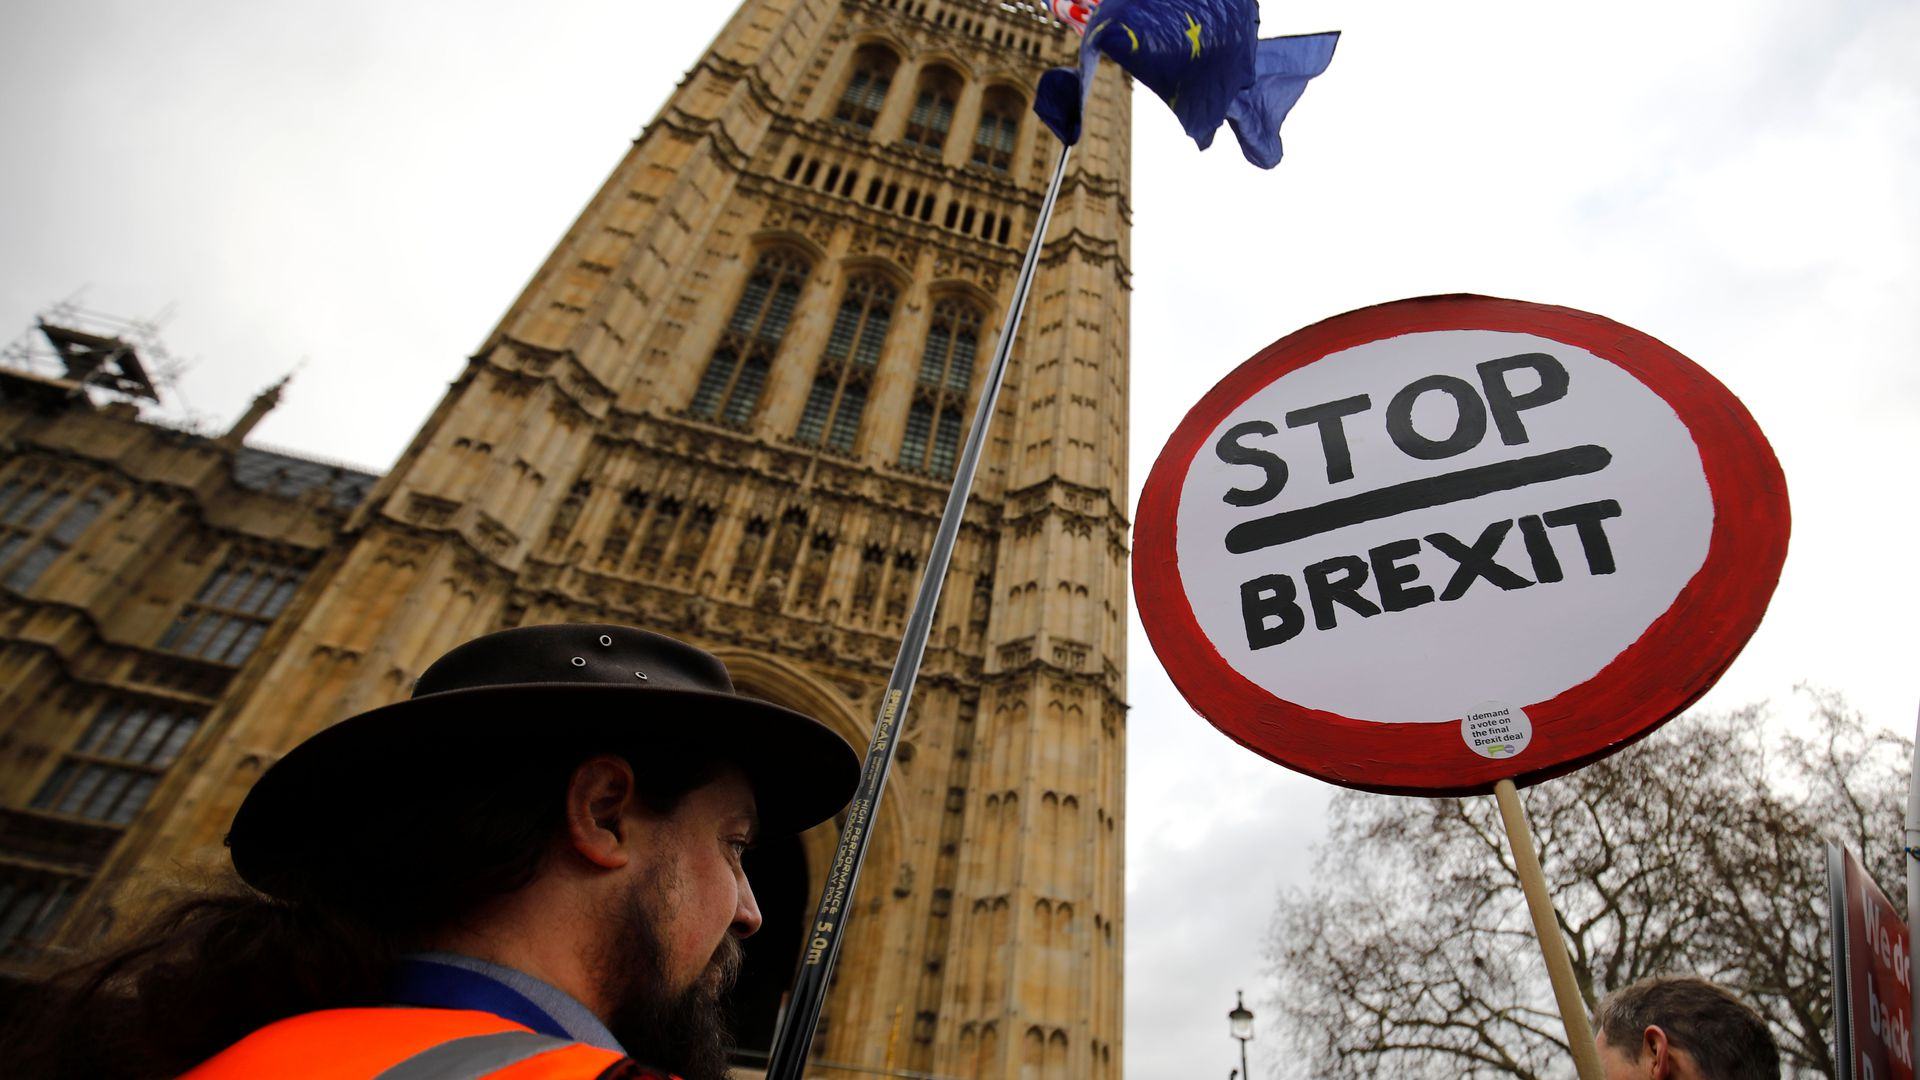 Man in London with a stop brexit sign